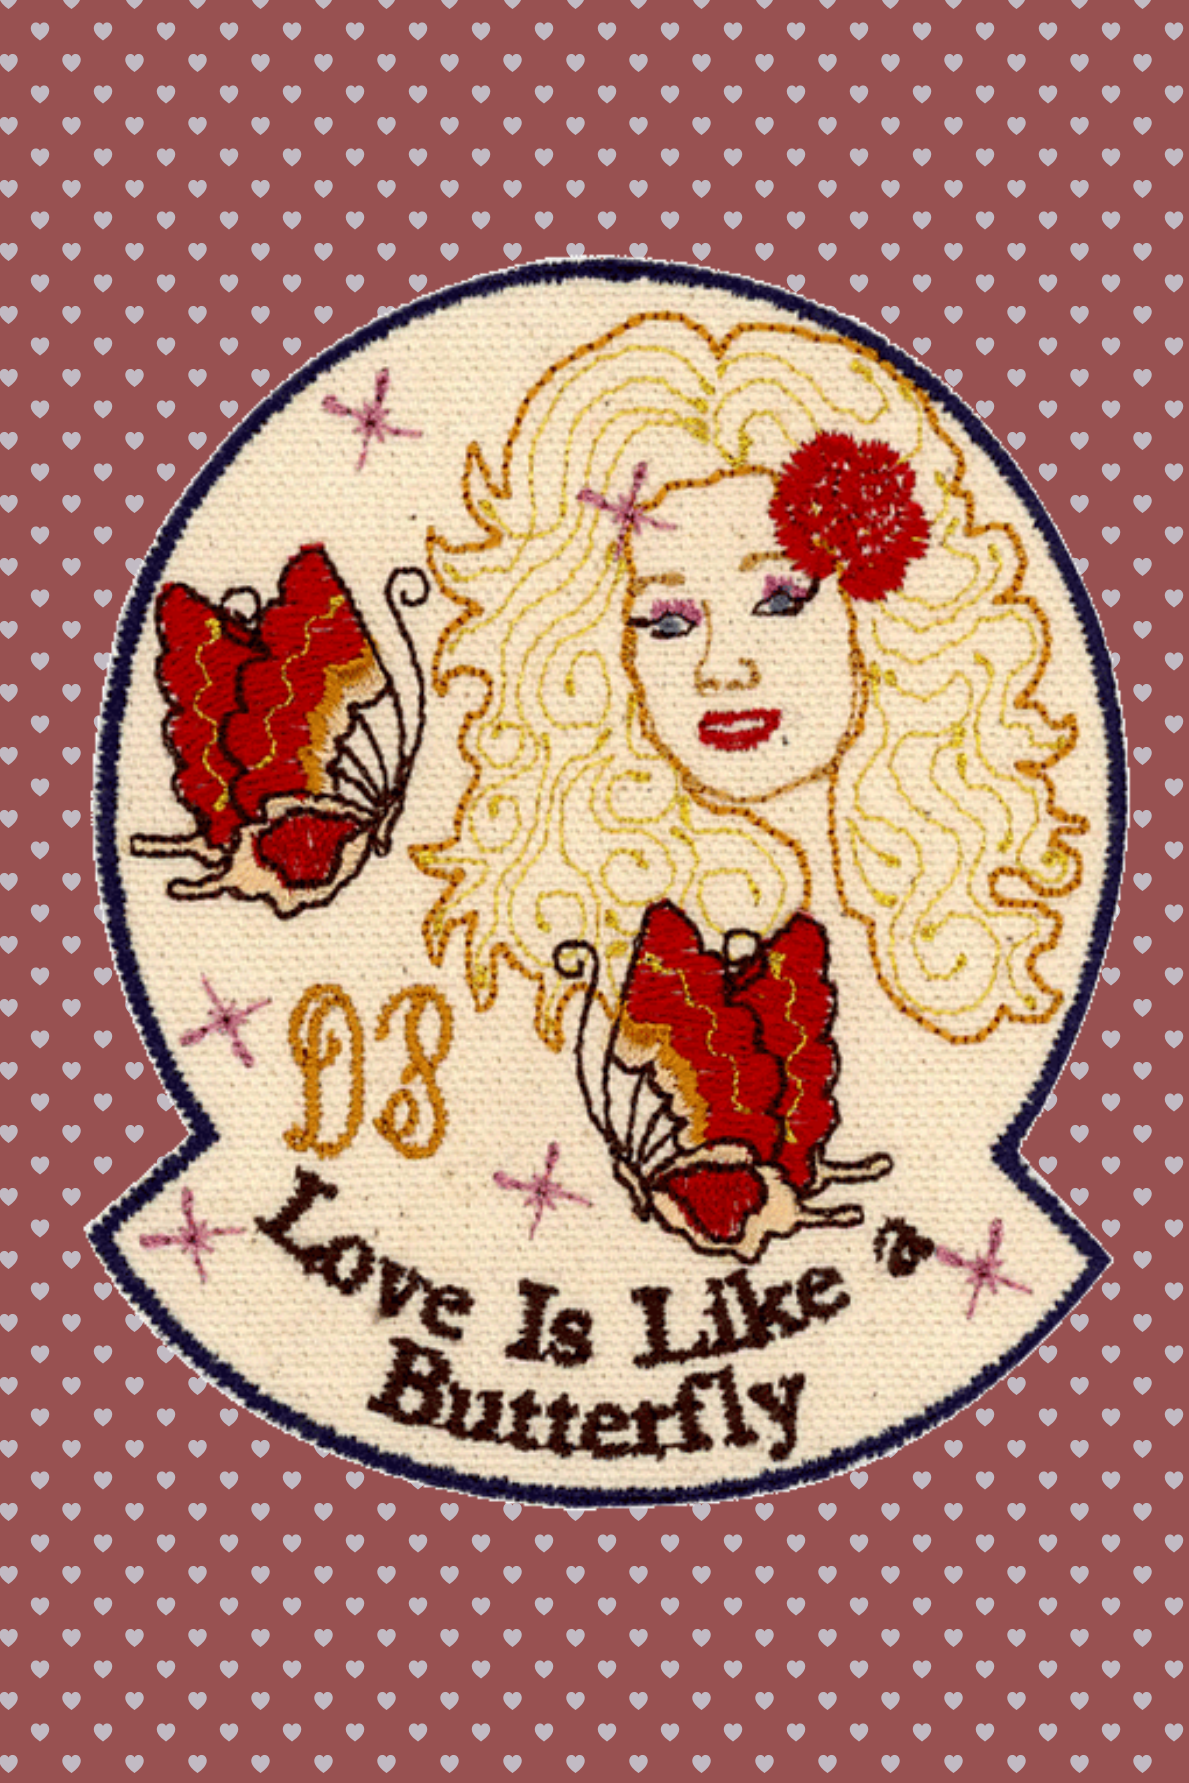 Love is Like a Butterfly Patch (Last One)